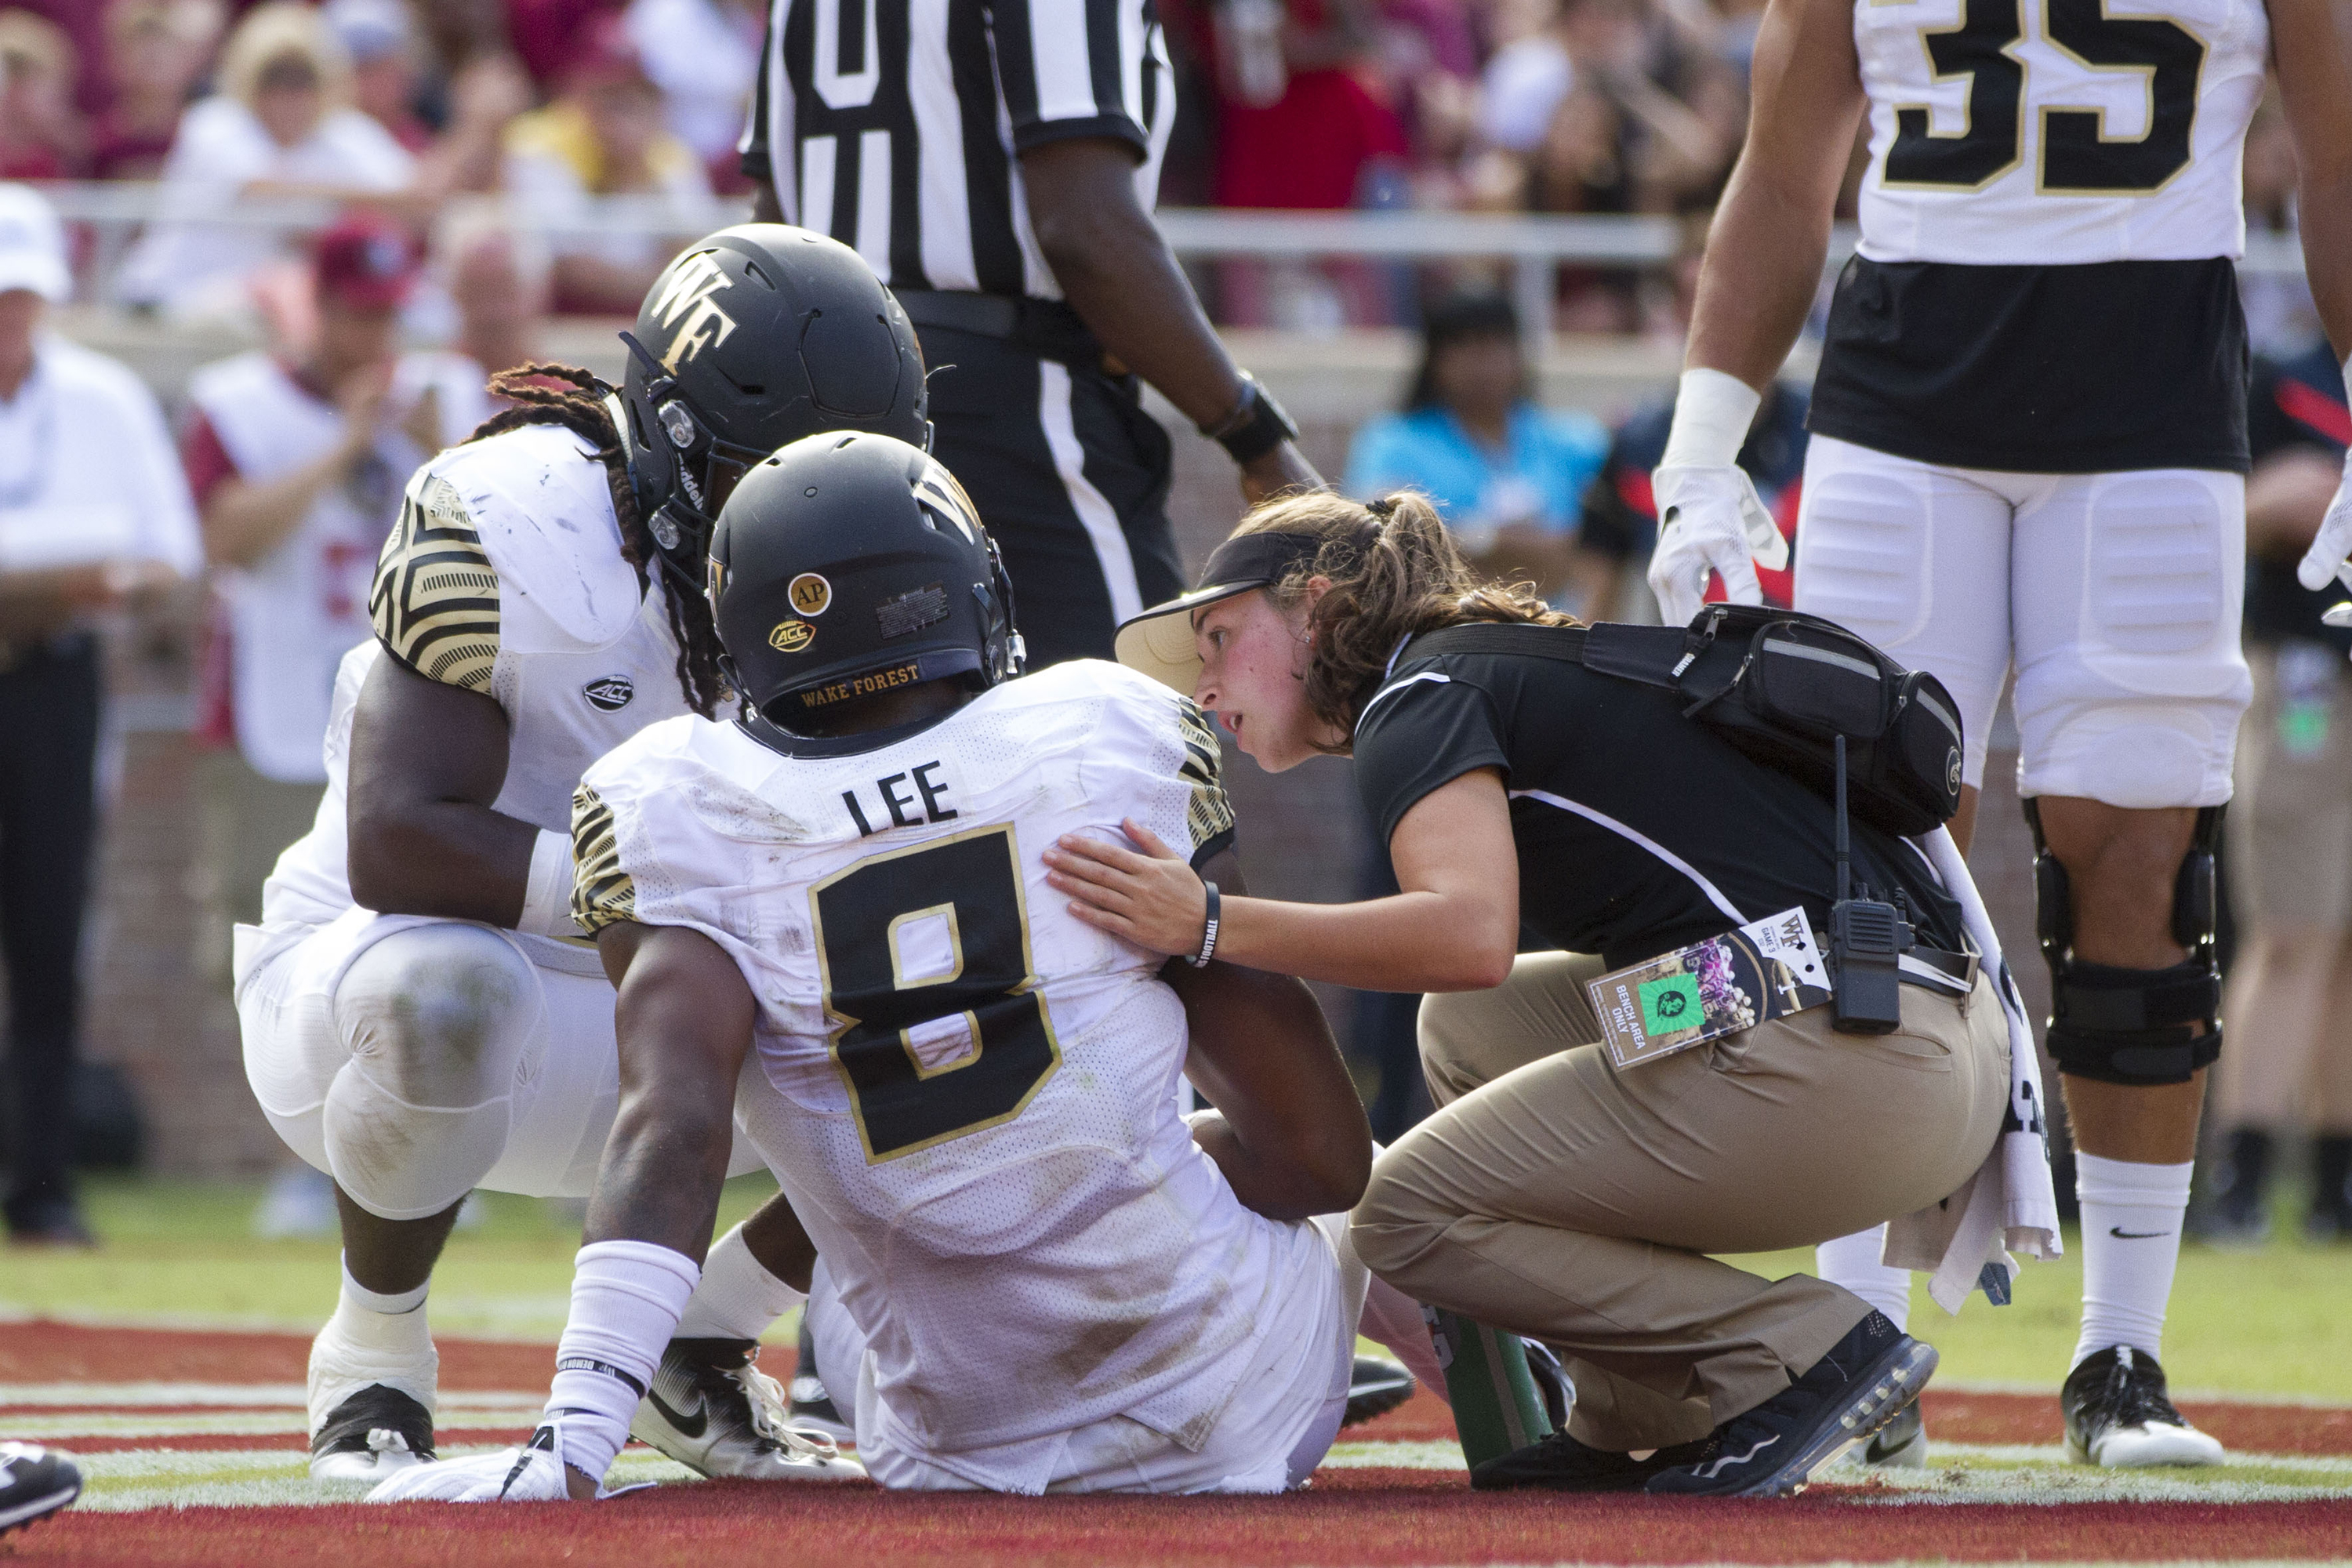 An athletic trainer attends to an injured football player. (Photo by Logan Stanford/Icon Sportswire via Getty Images)